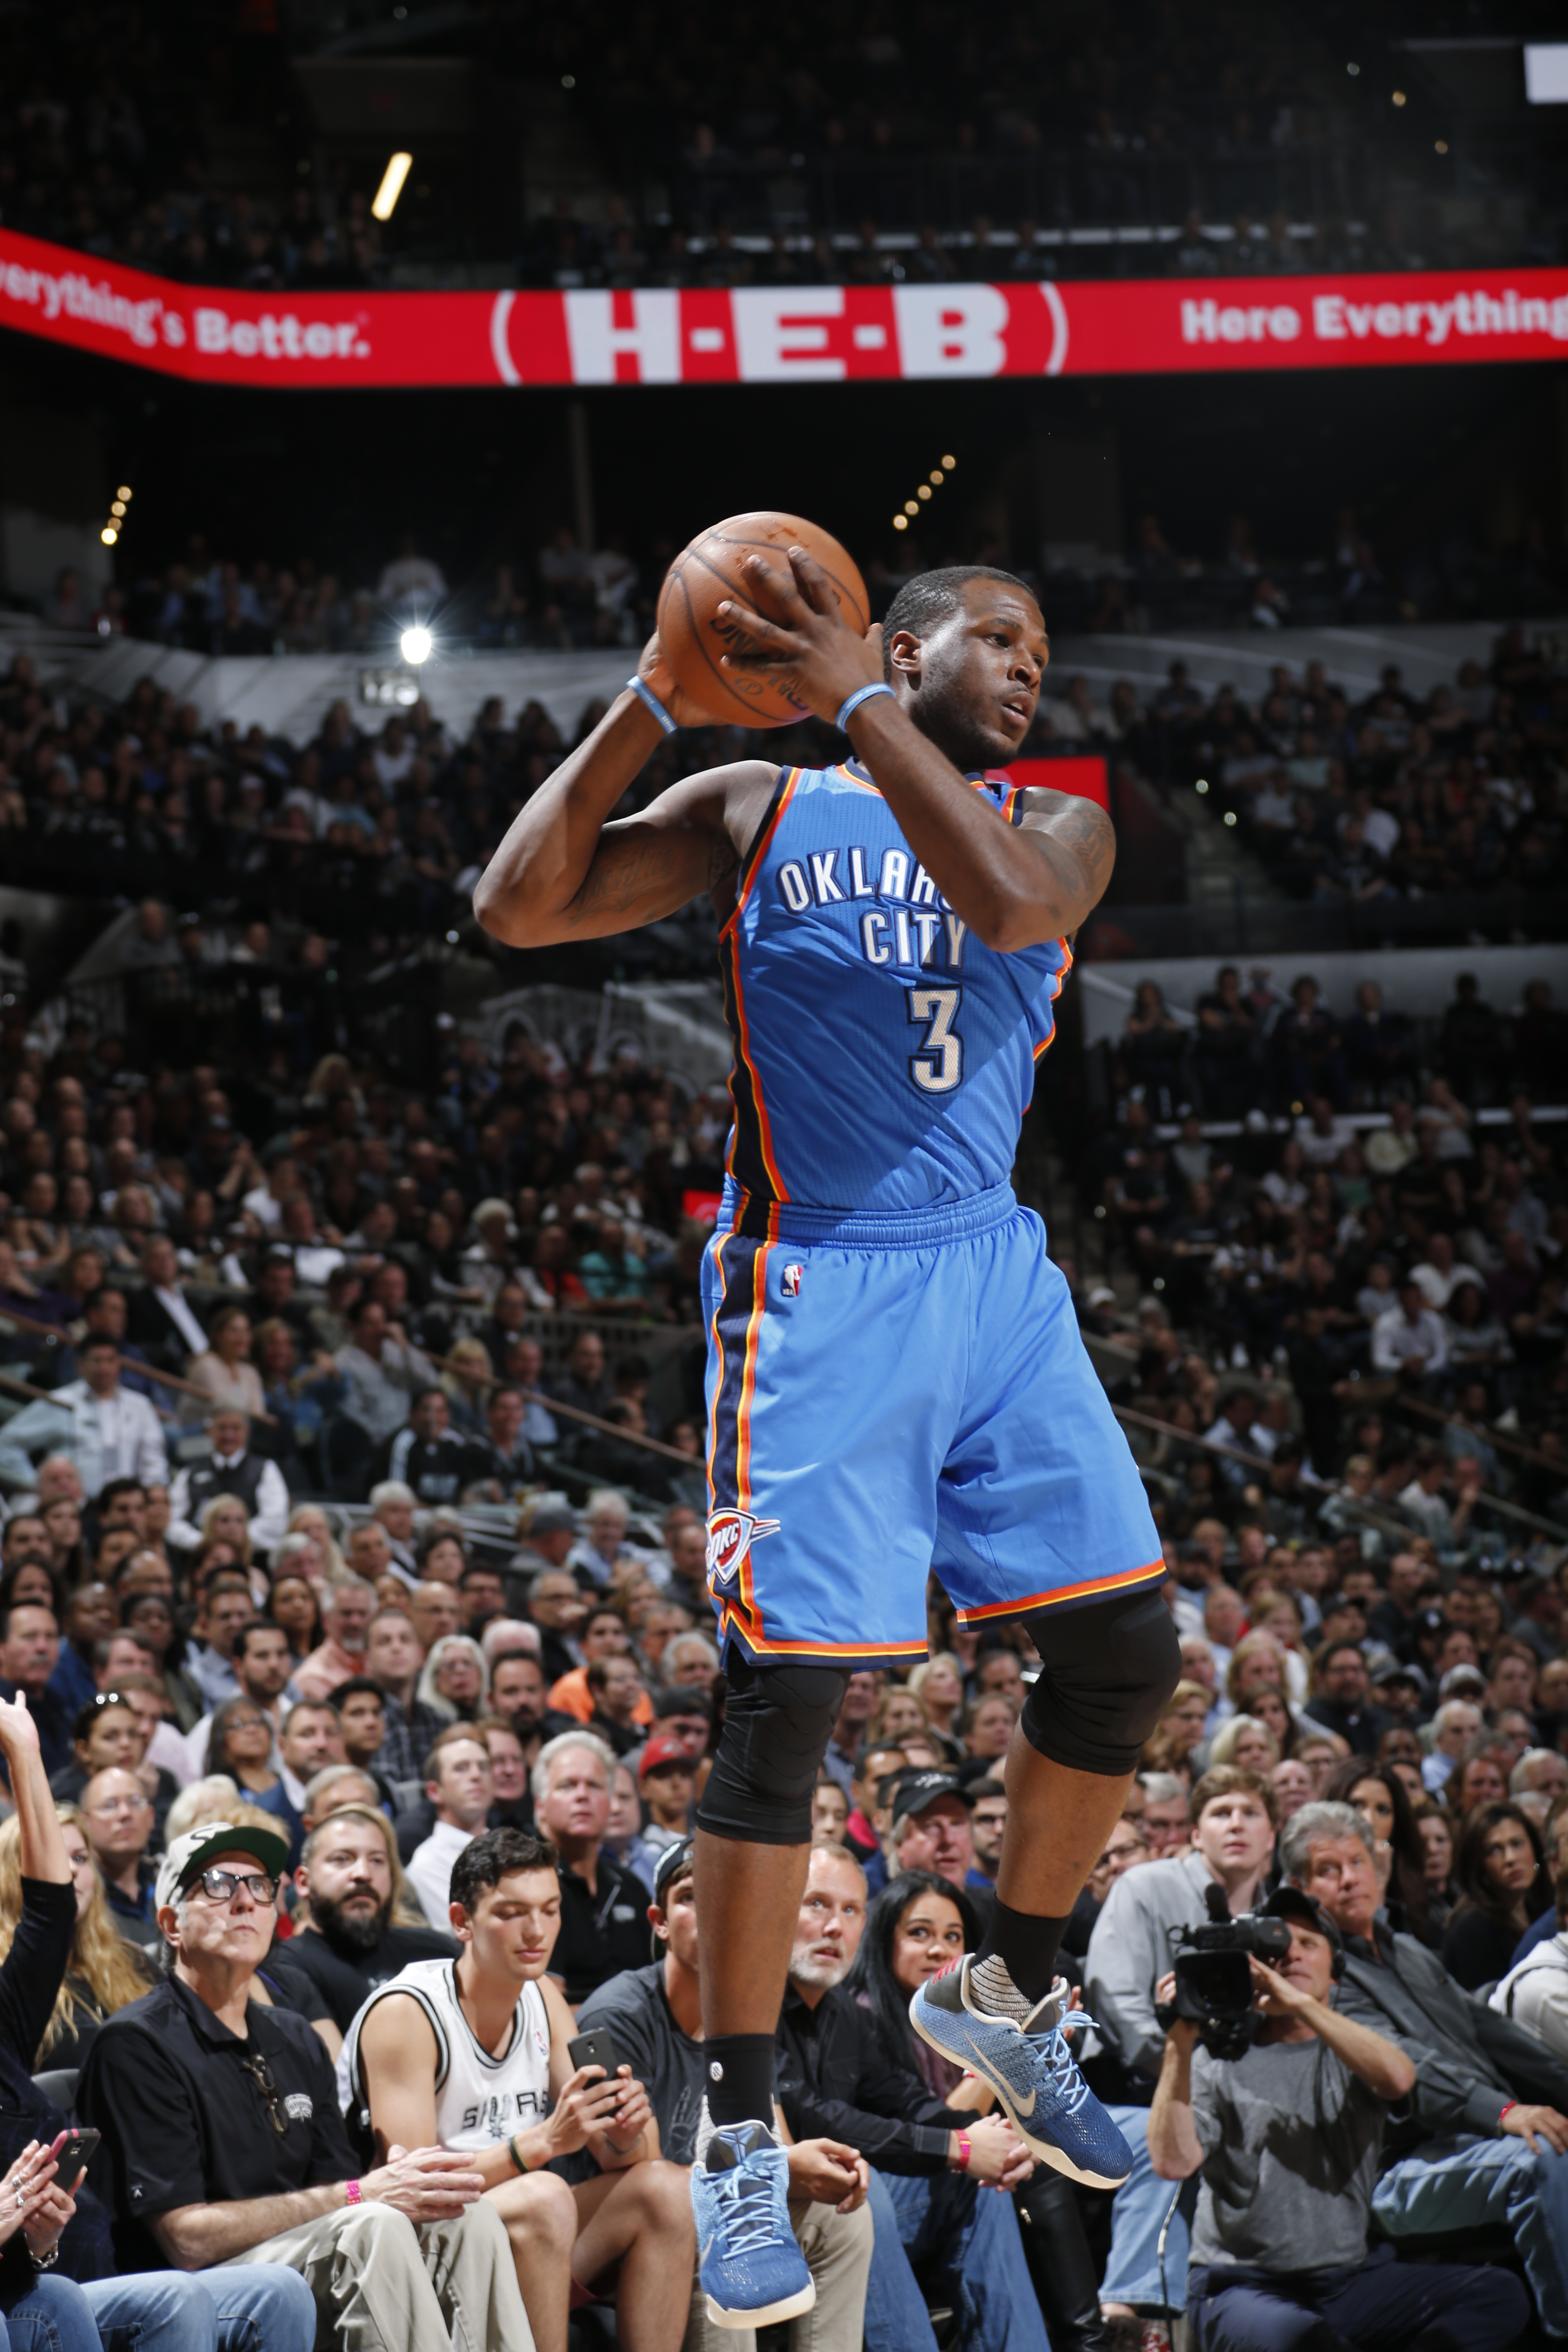 SAN ANTONIO, TX - MAY 2:  Dion Waiters #3 of the Oklahoma City Thunder handles the ball against the San Antonio Spurs in Game Two of the Western Conference Semifinals during the 2016 NBA Playoffs on May 2, 2016 at the AT&T Center in San Antonio, Texas.